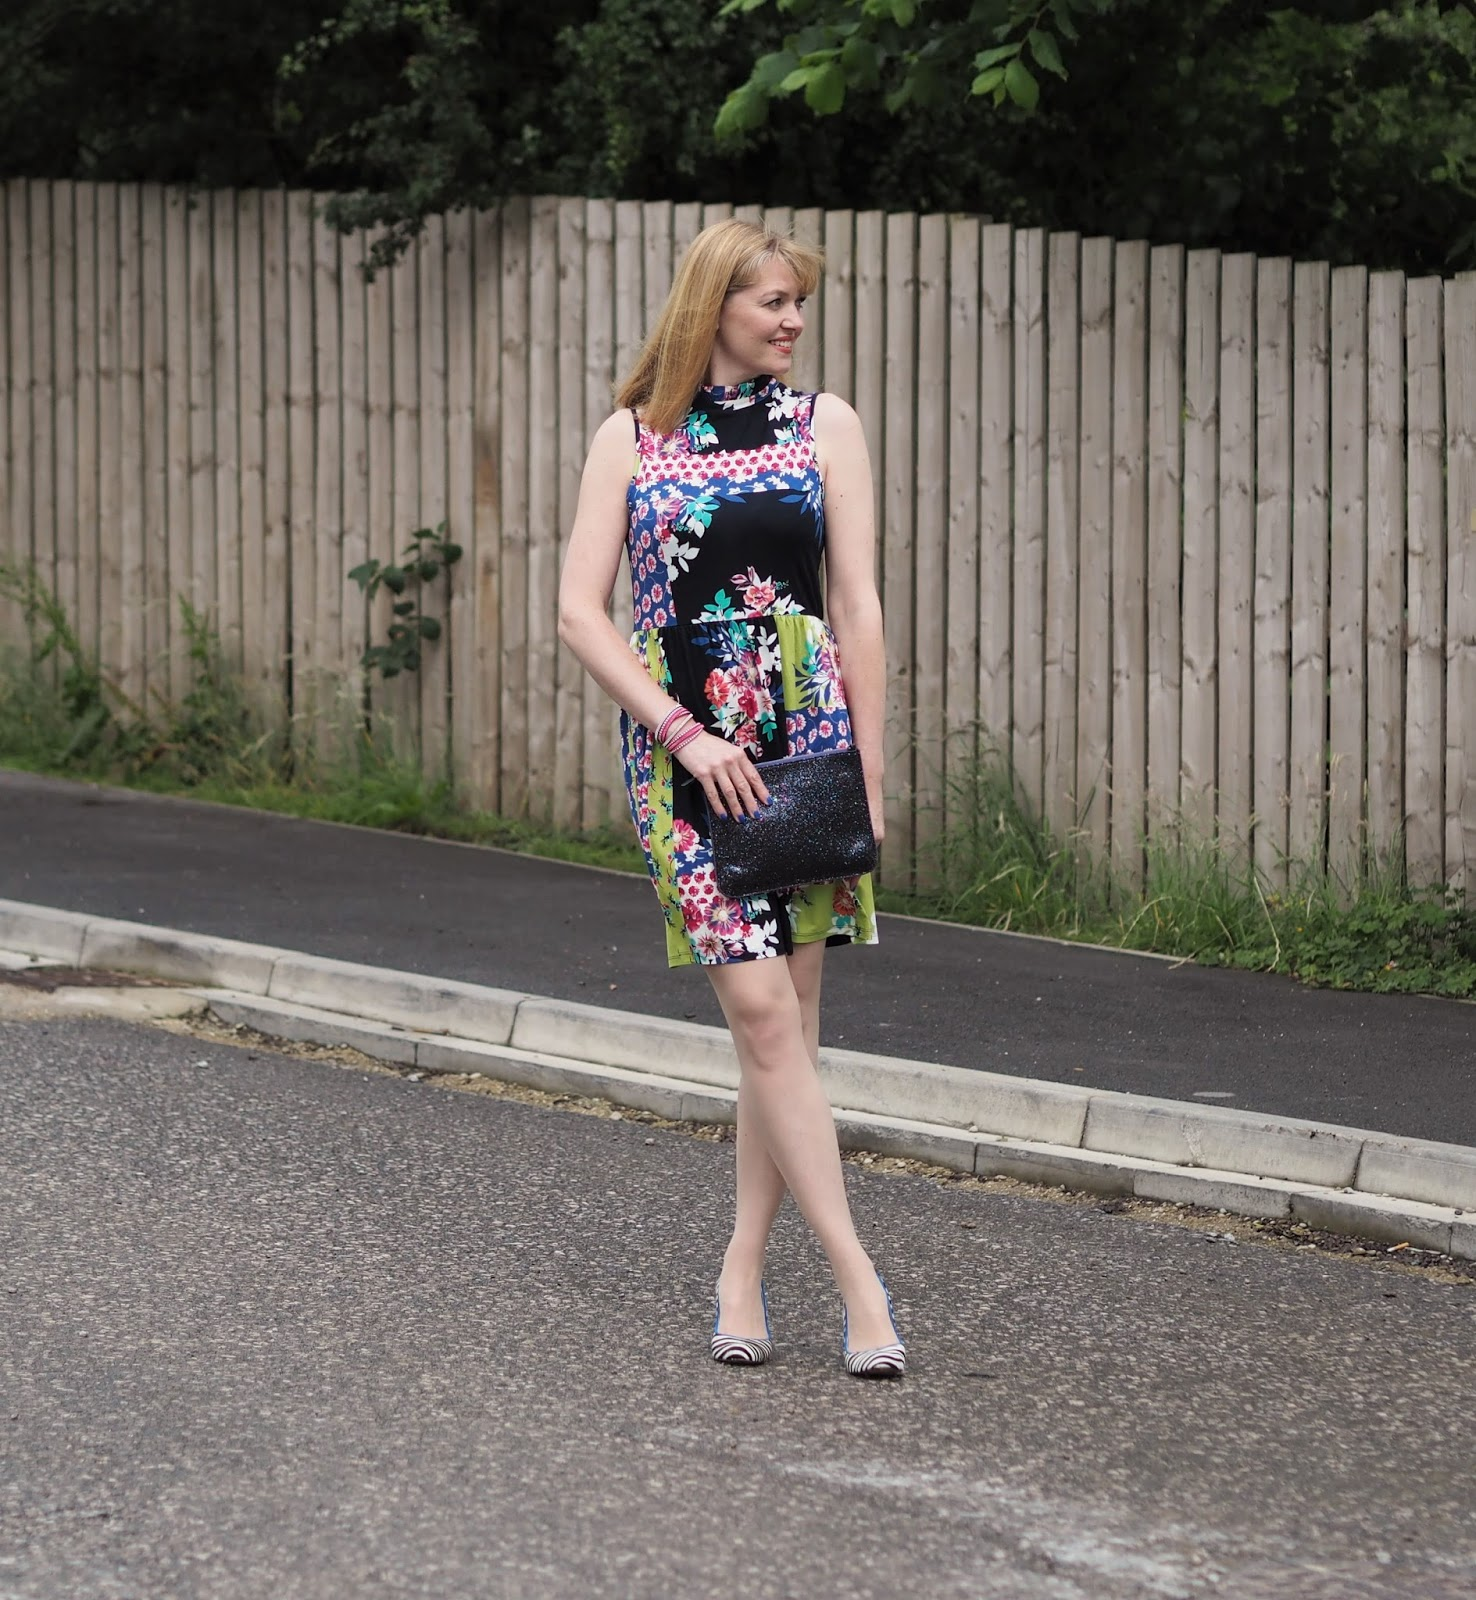 Floral ruffle dress and zebra shoes. Over 40